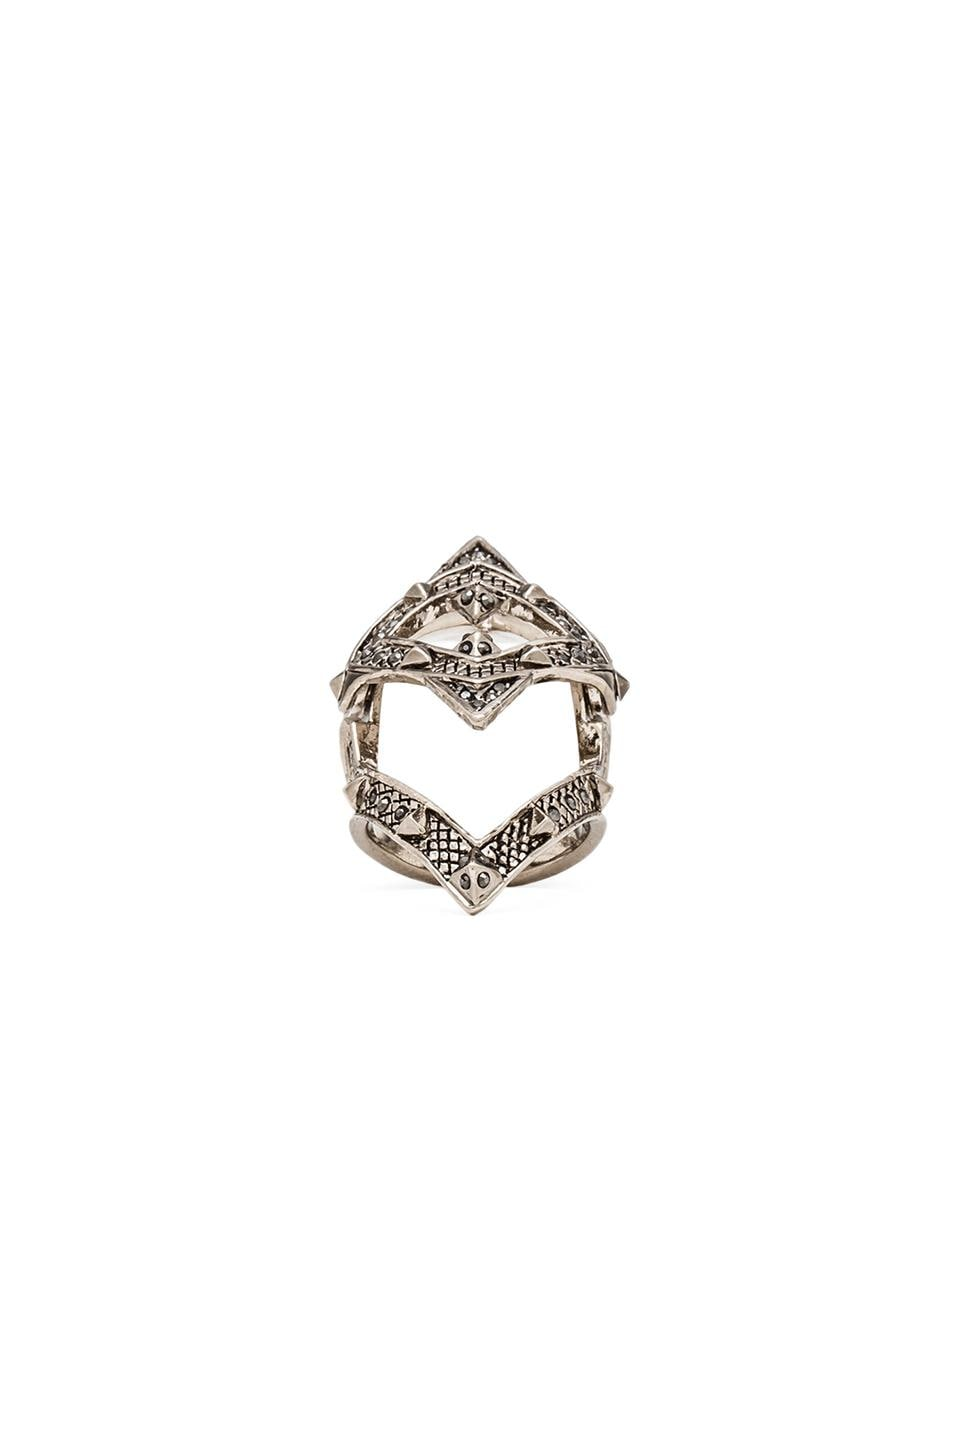 House of Harlow 1960 House of Harlow Pave Jaws Finger Ring in Silver